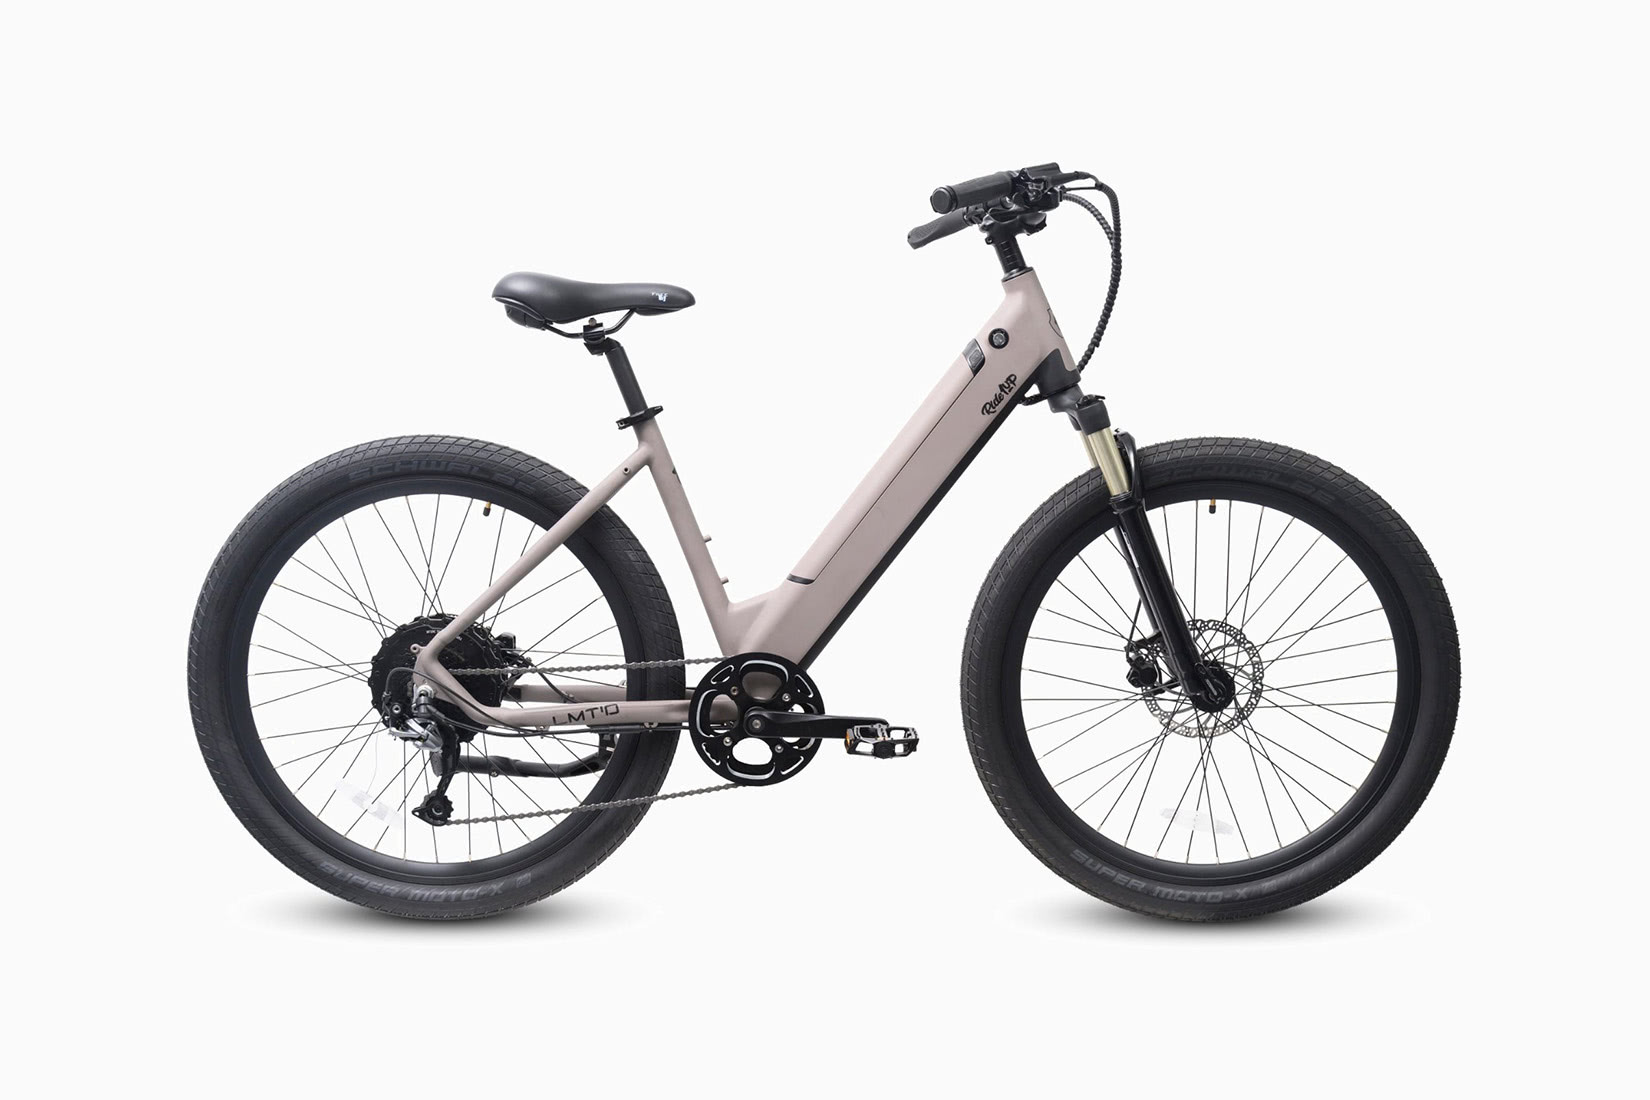 ride1up LMTD review electric bike luxe digital